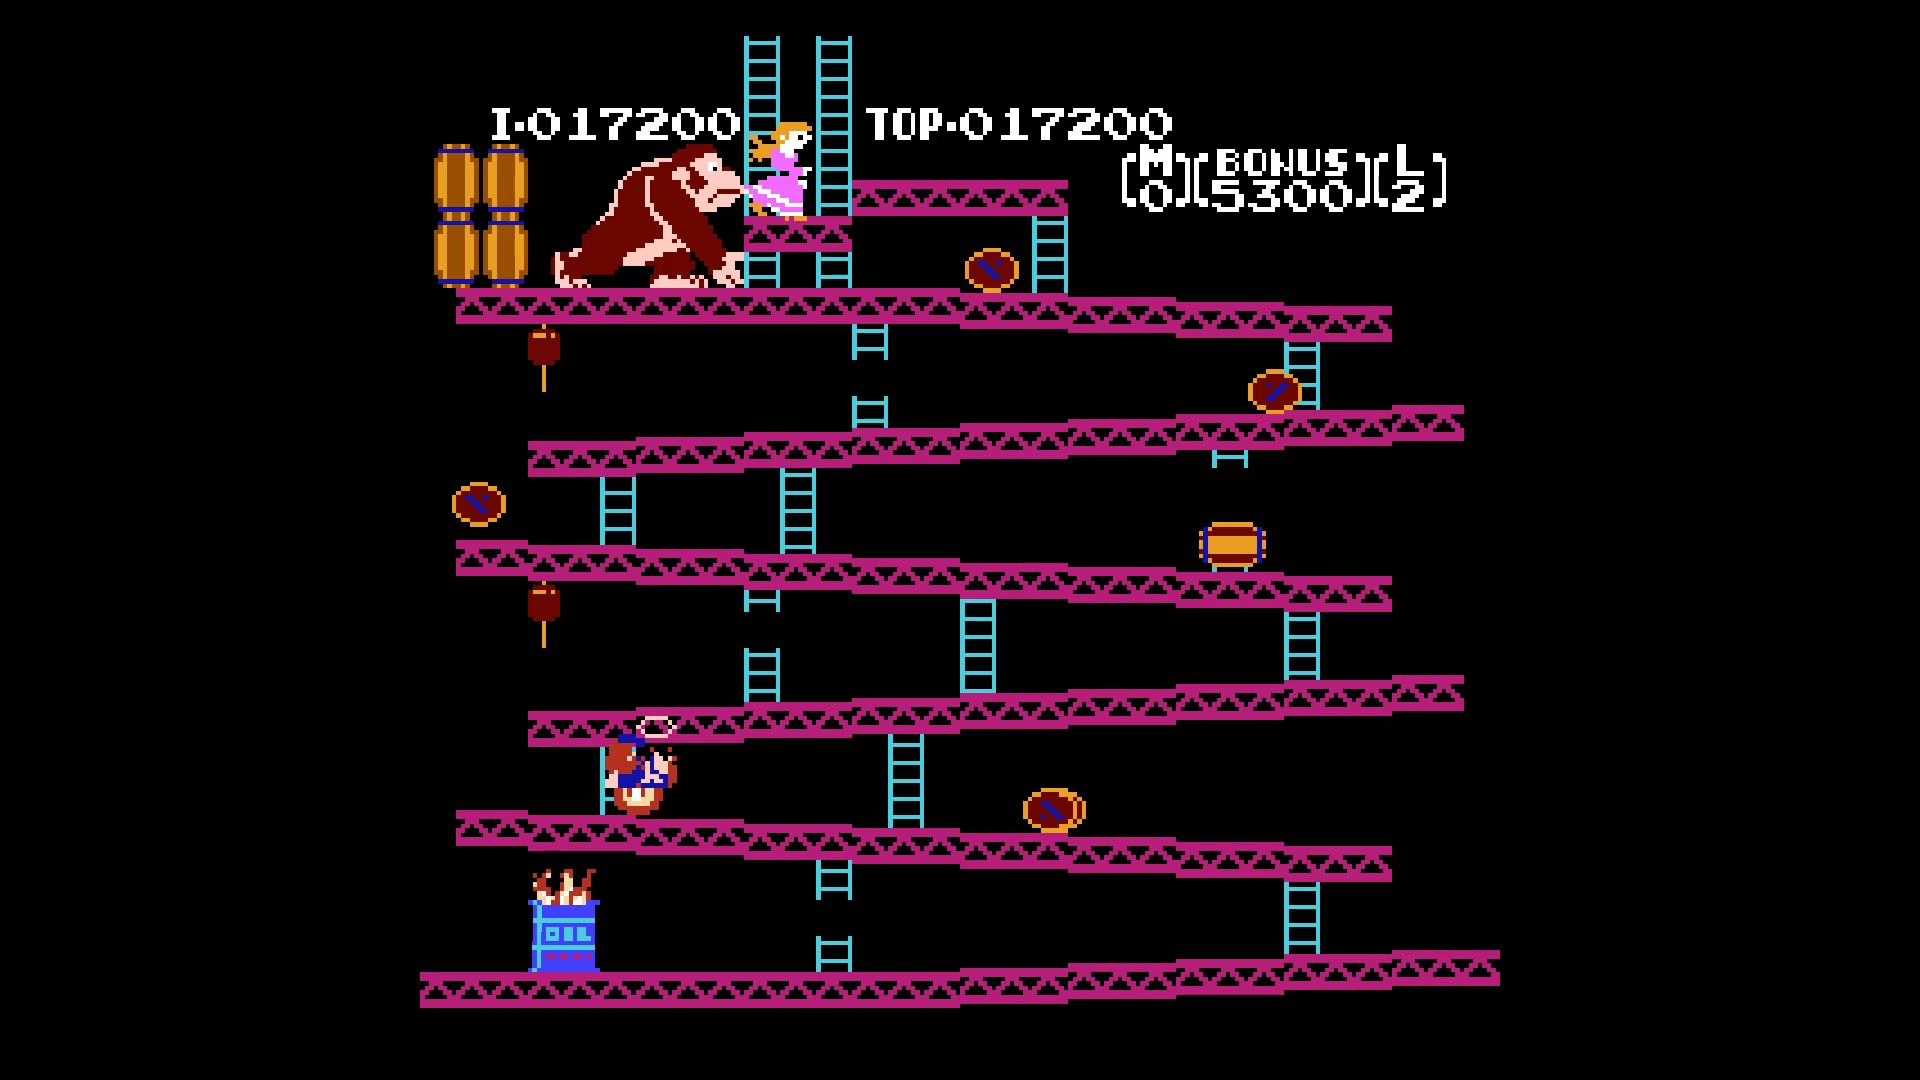 Donkey Kong: Game B 17,200 points